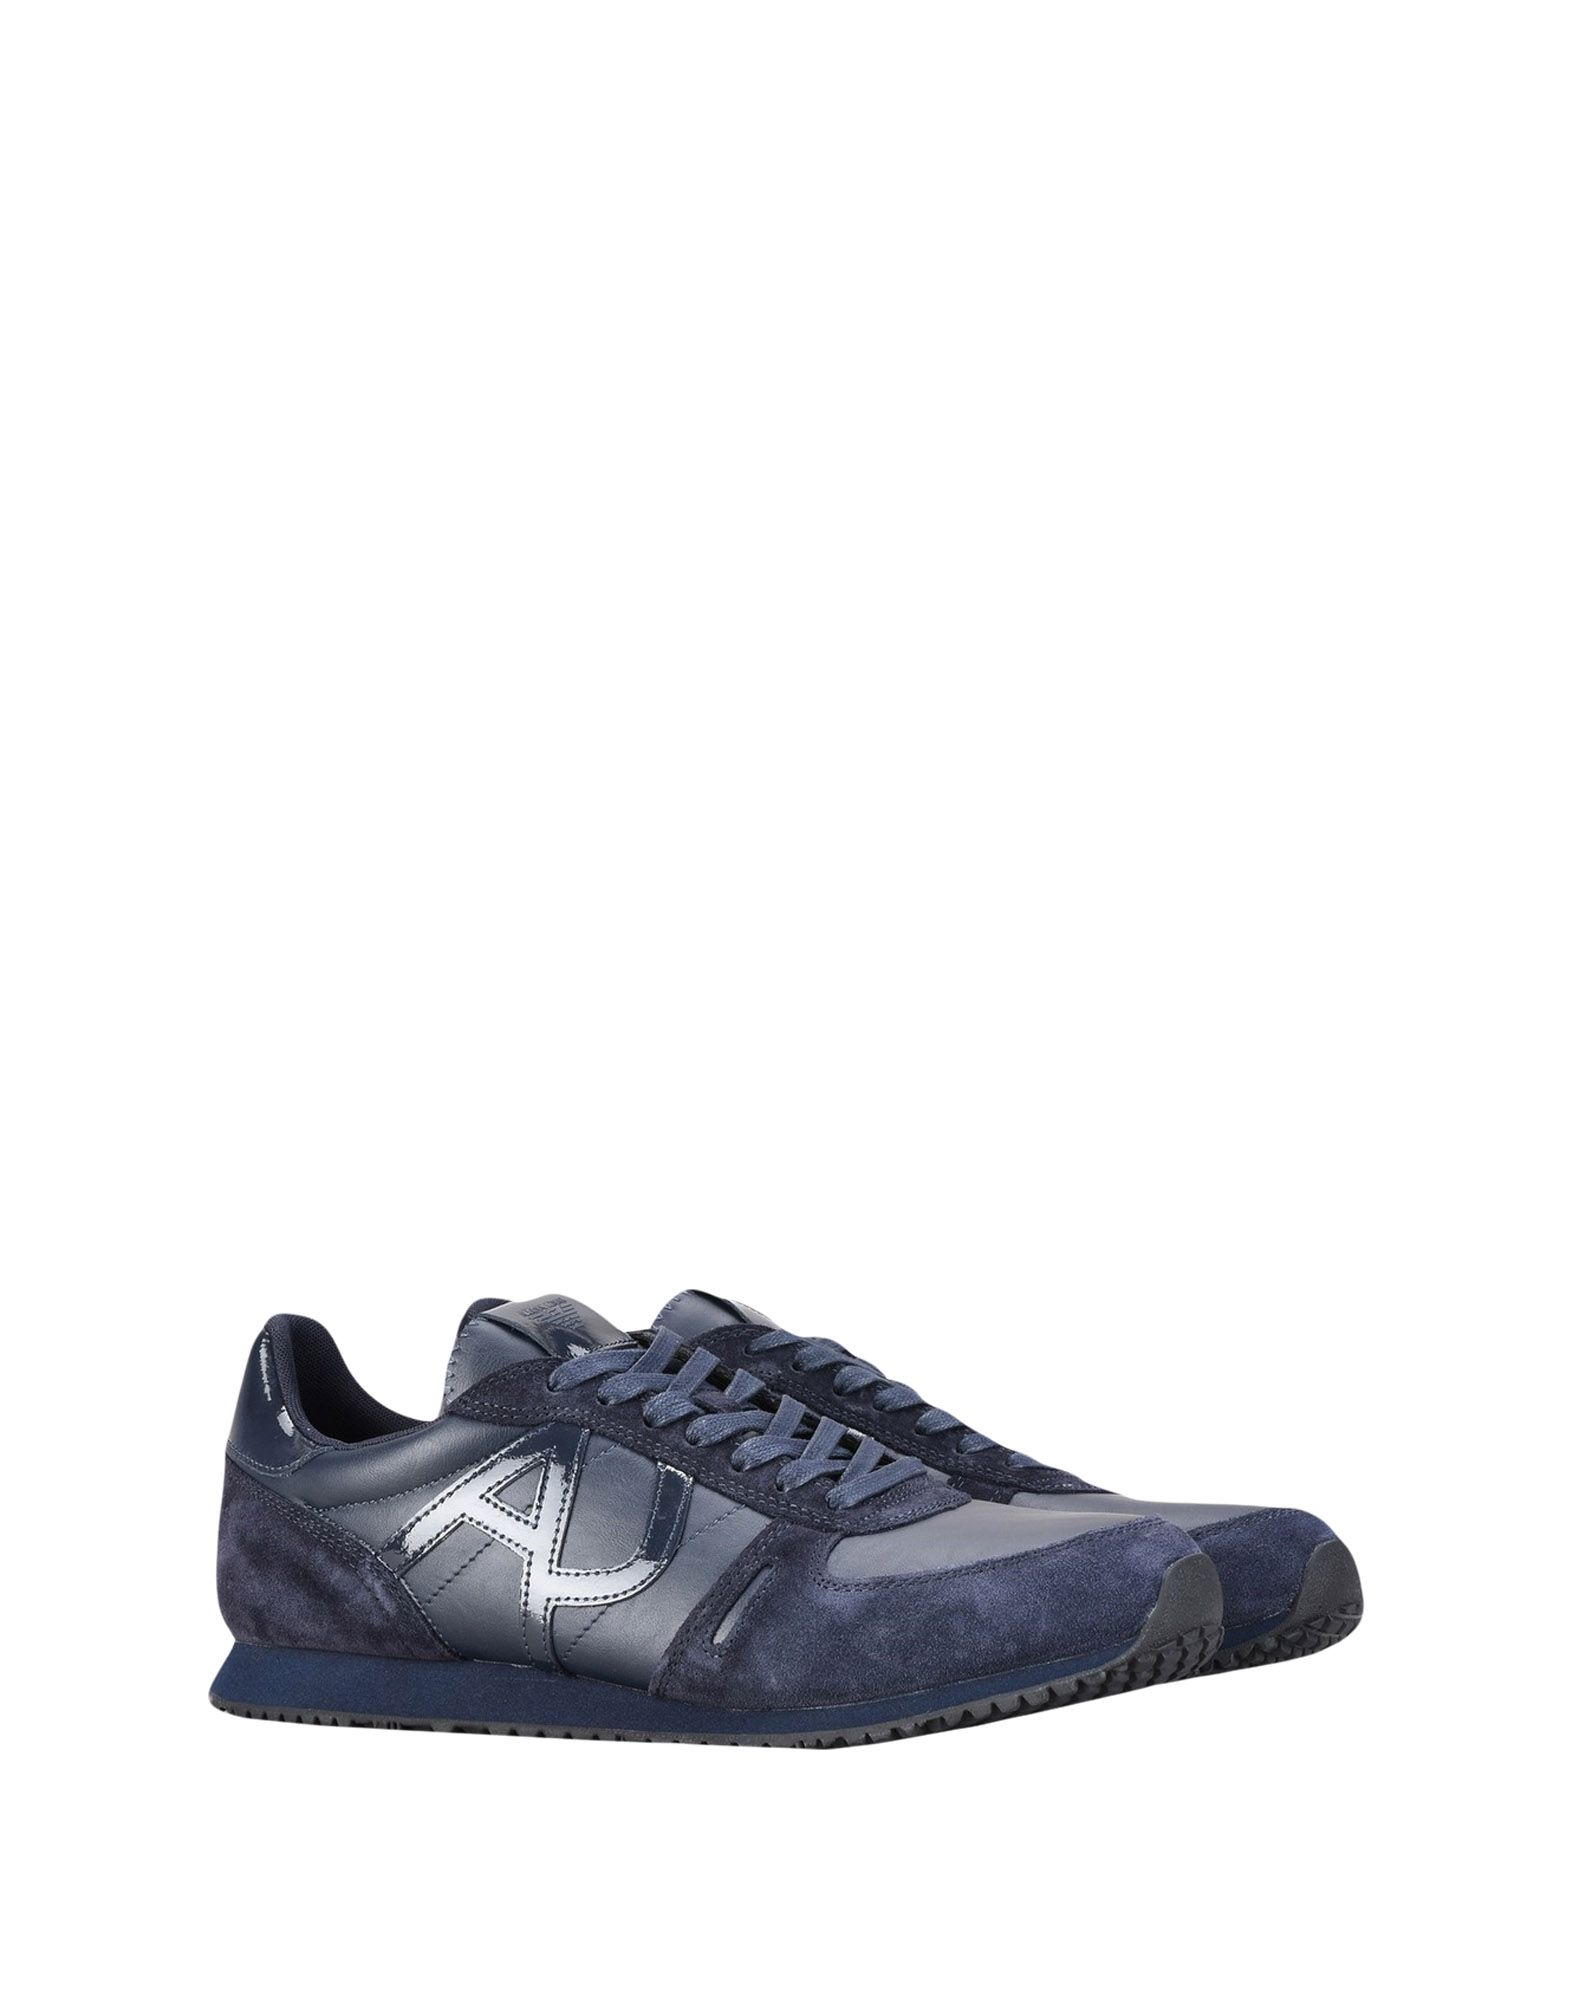 Armani on Jeans Sneakers - Men Armani Jeans Sneakers online on Armani  Canada - 11560119SB b5a5e5